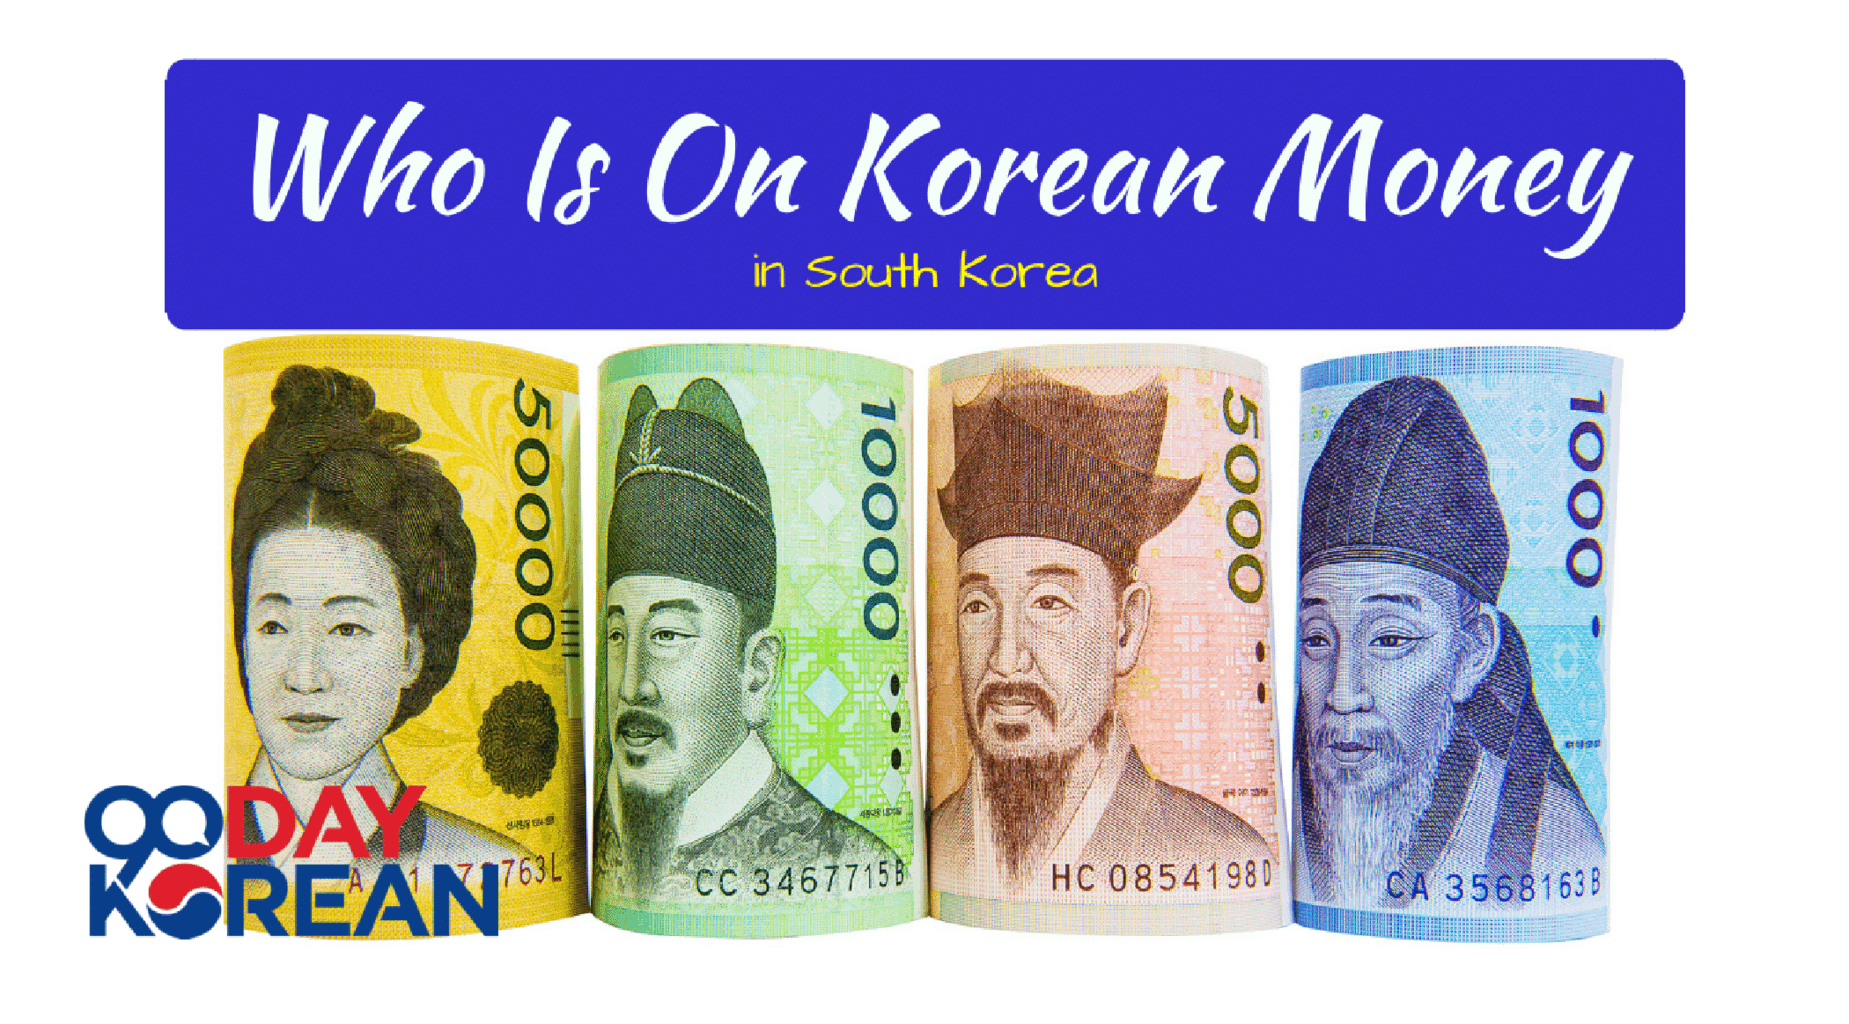 Who is on Korean Money in South Korea